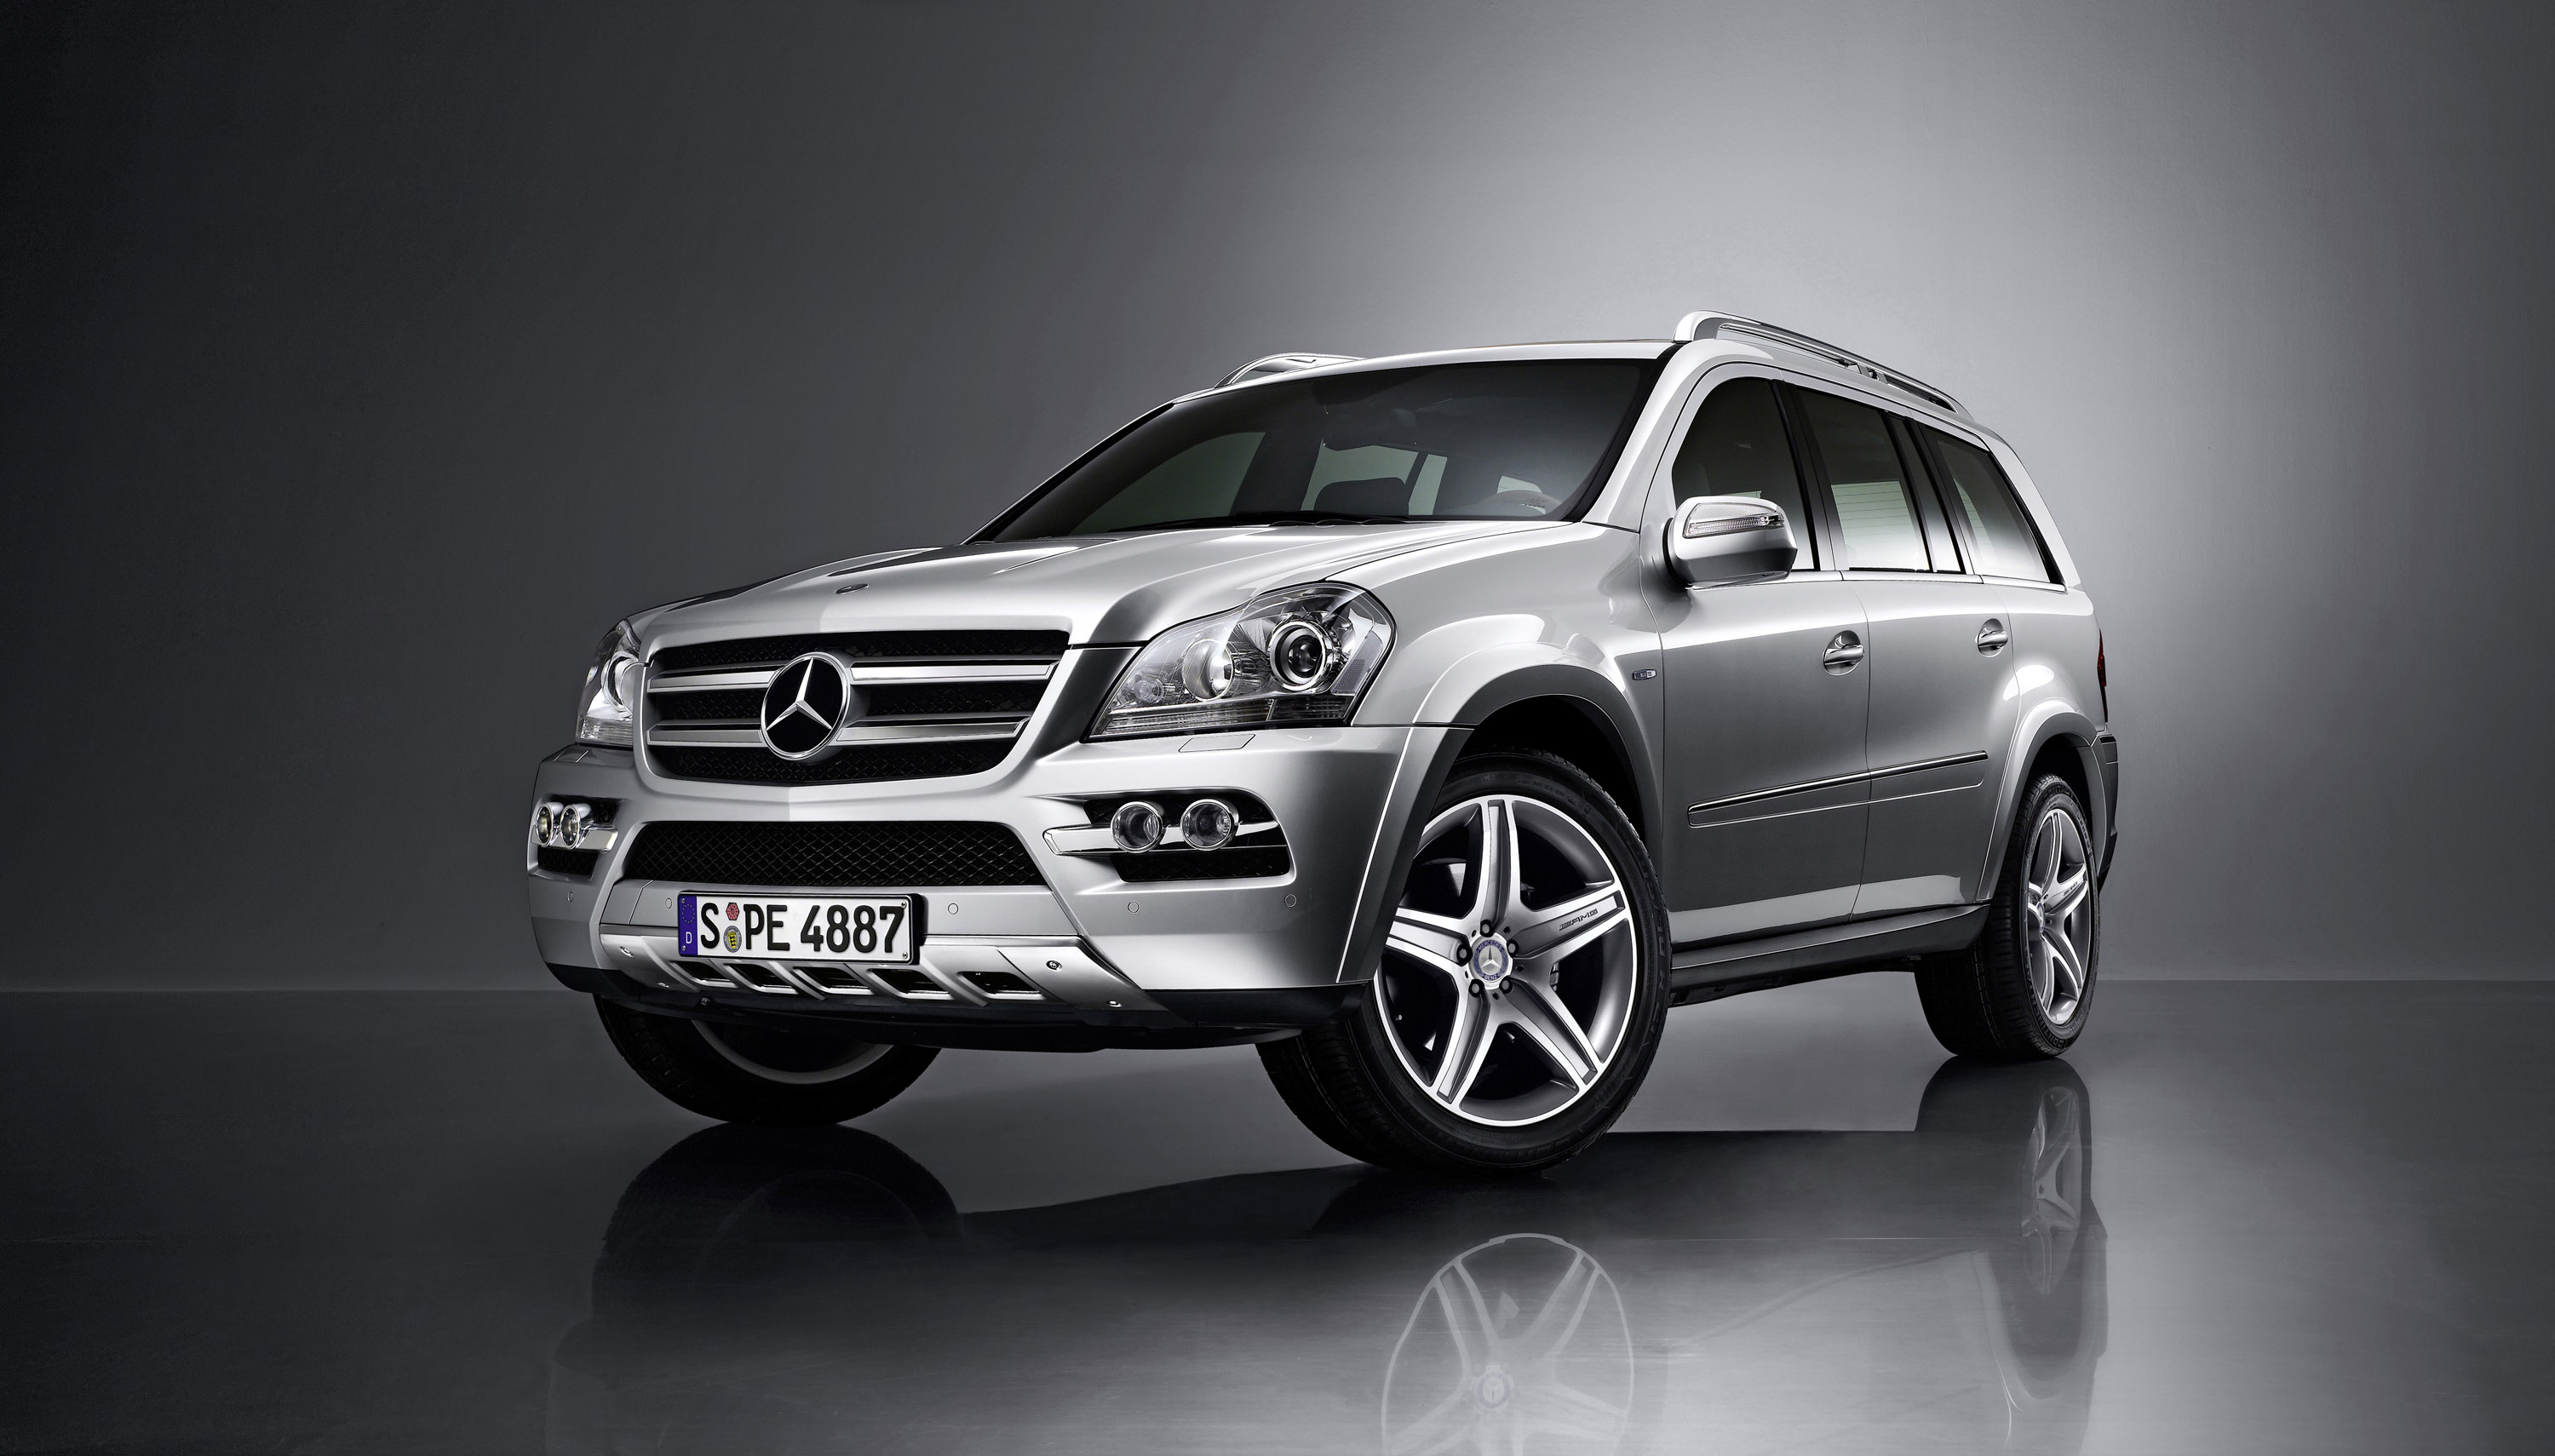 Mercedes Benz Glk Class Diesel Could Be On Its Way To Maryland 2011 350 Engine Diagrams